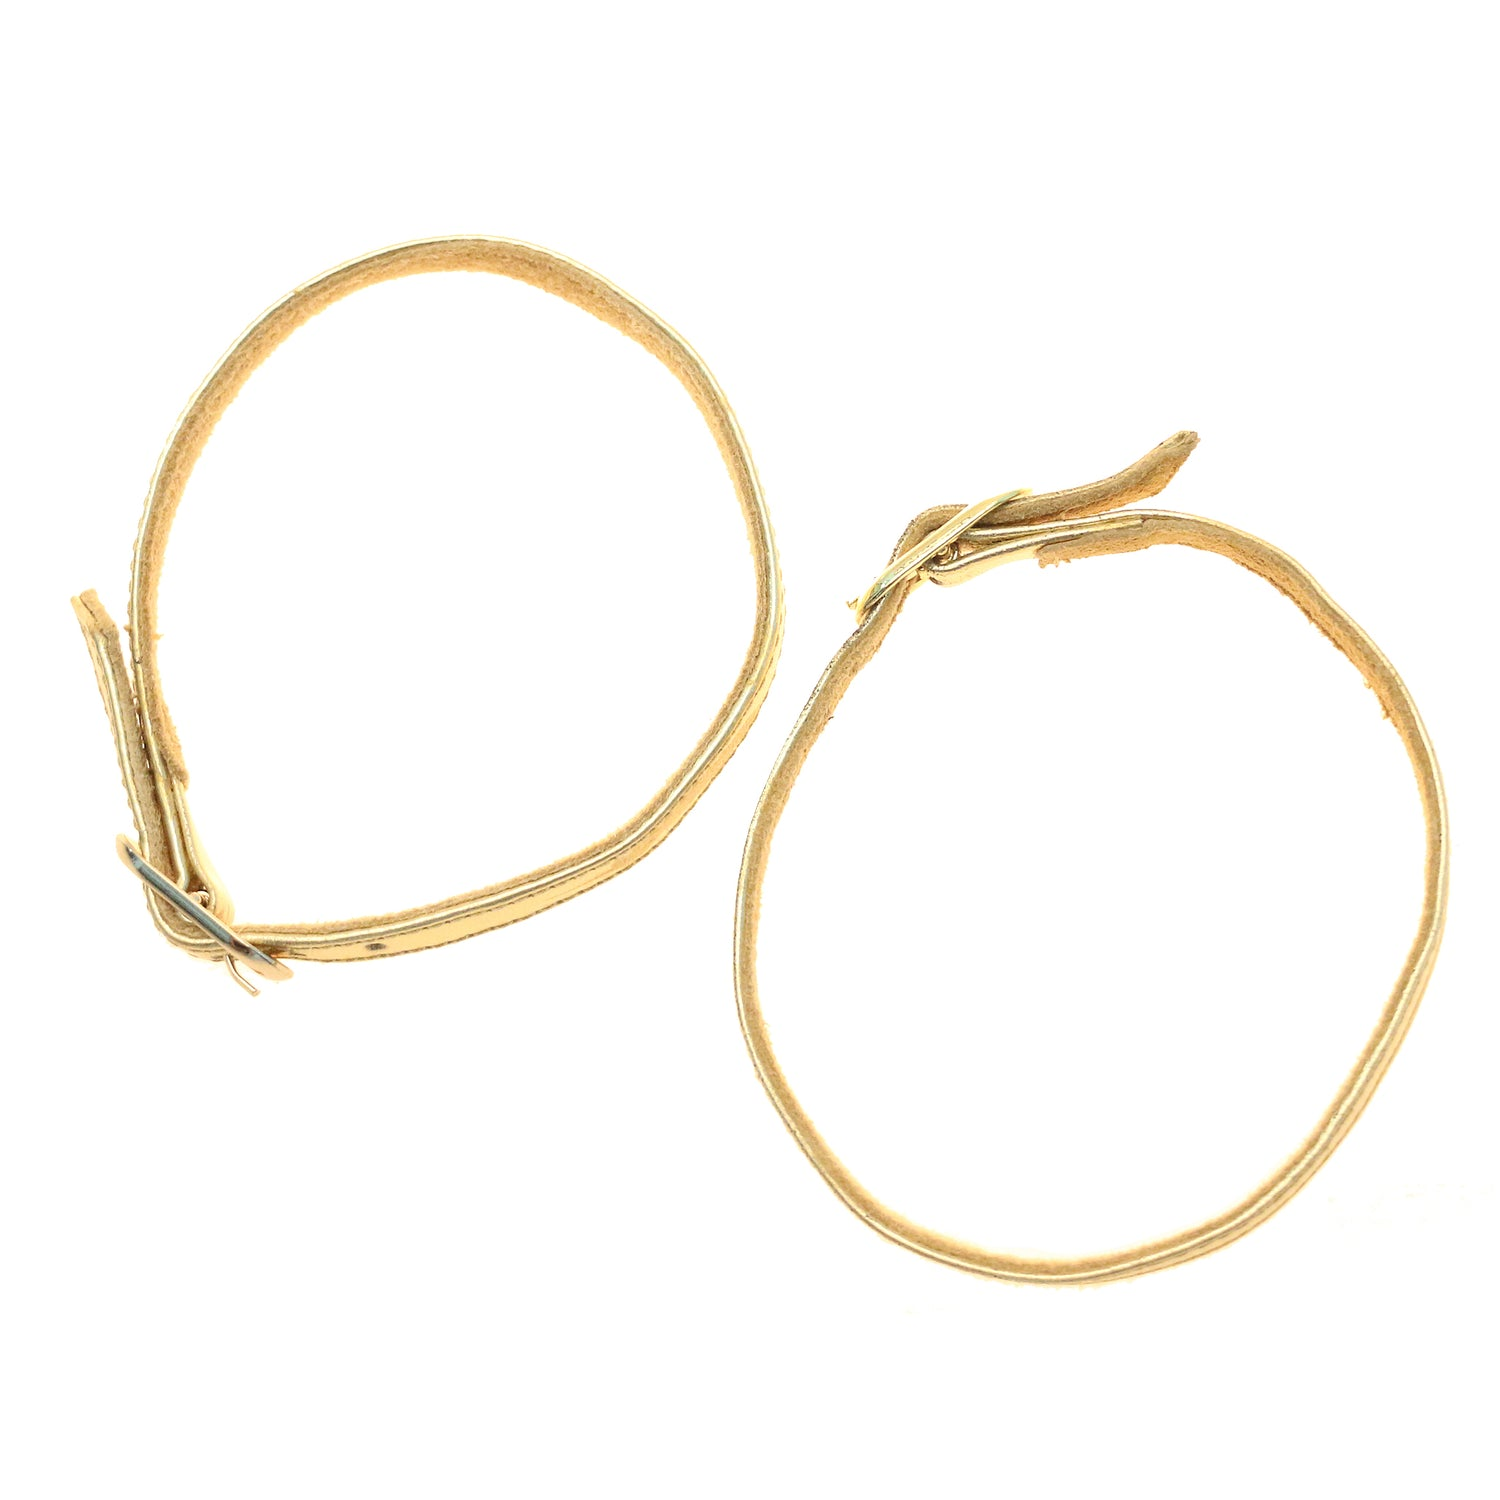 Replacement Gold Ankle Straps - Set of 2